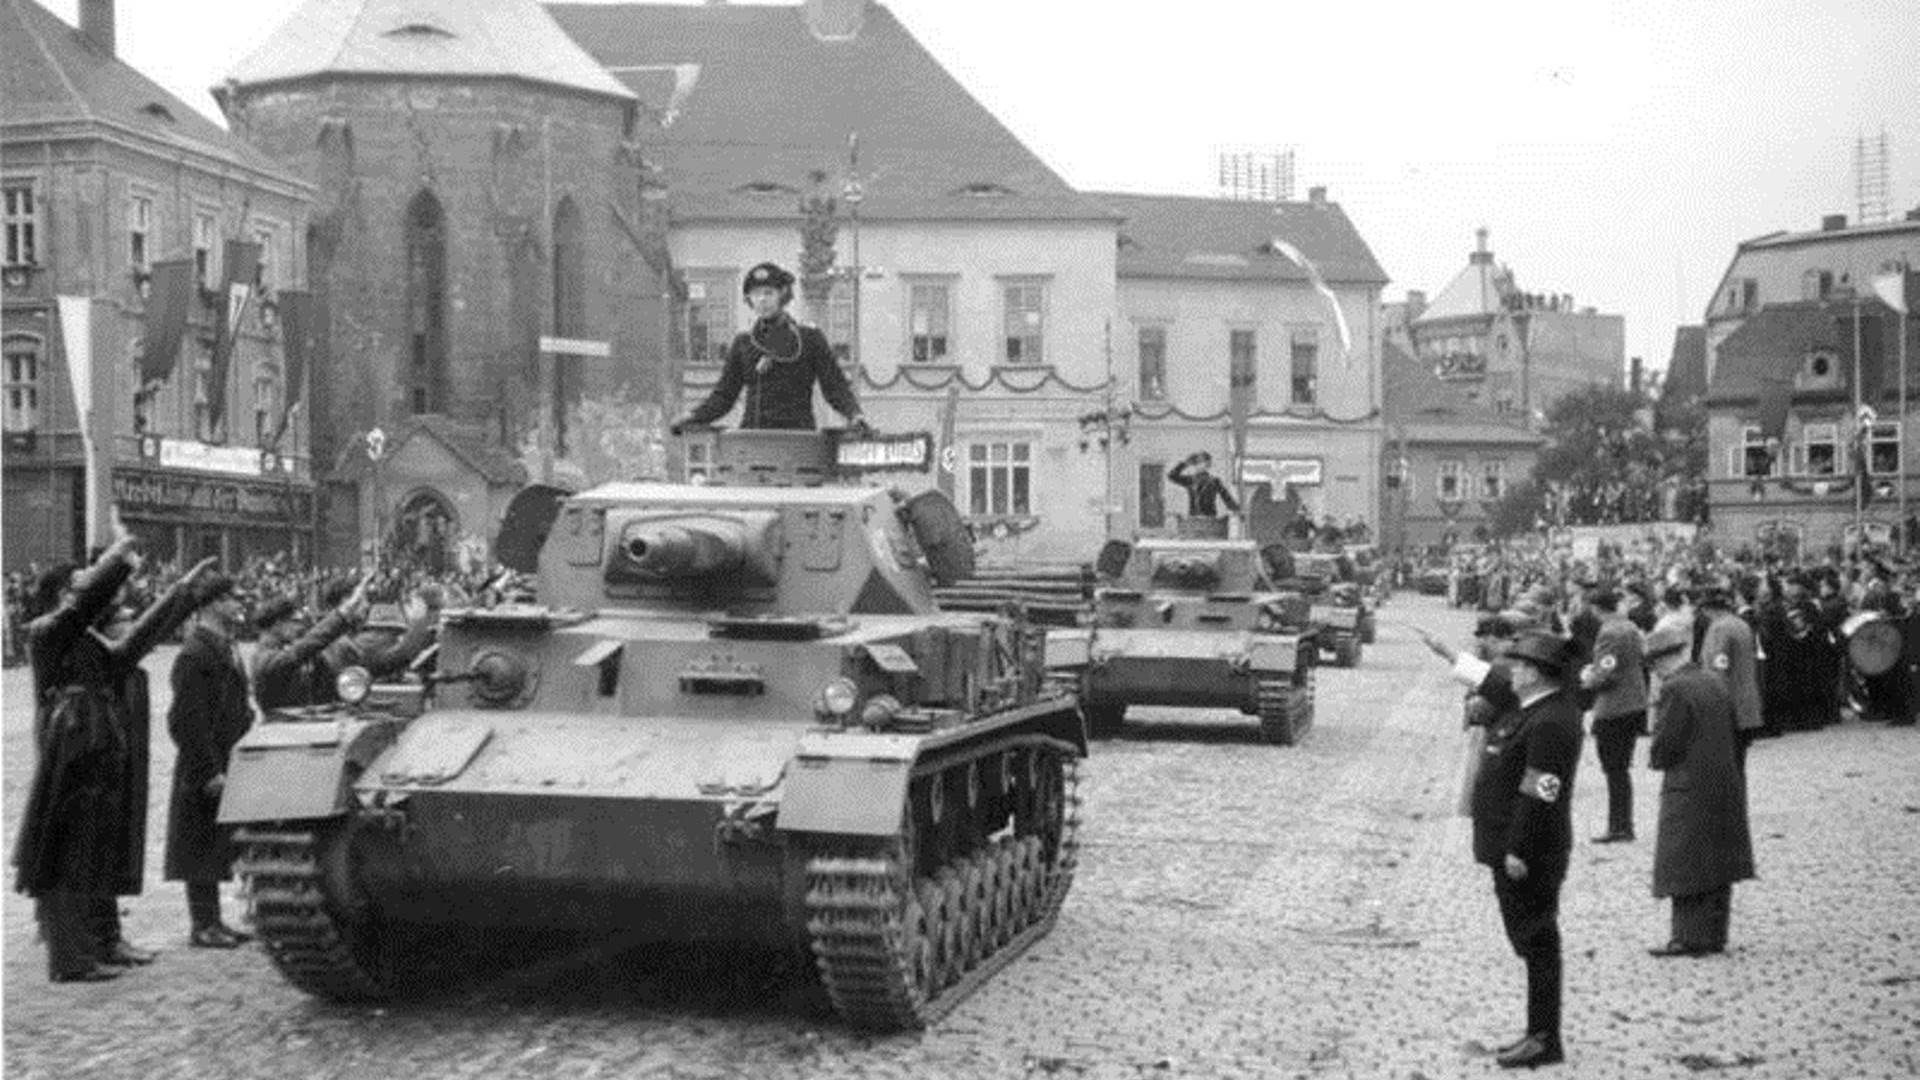 3rd Reich pz4a Panzer IV Ausf. A tanks parading in Sudetenland, Germany (annexed from Czechoslovakia), Oct 1938